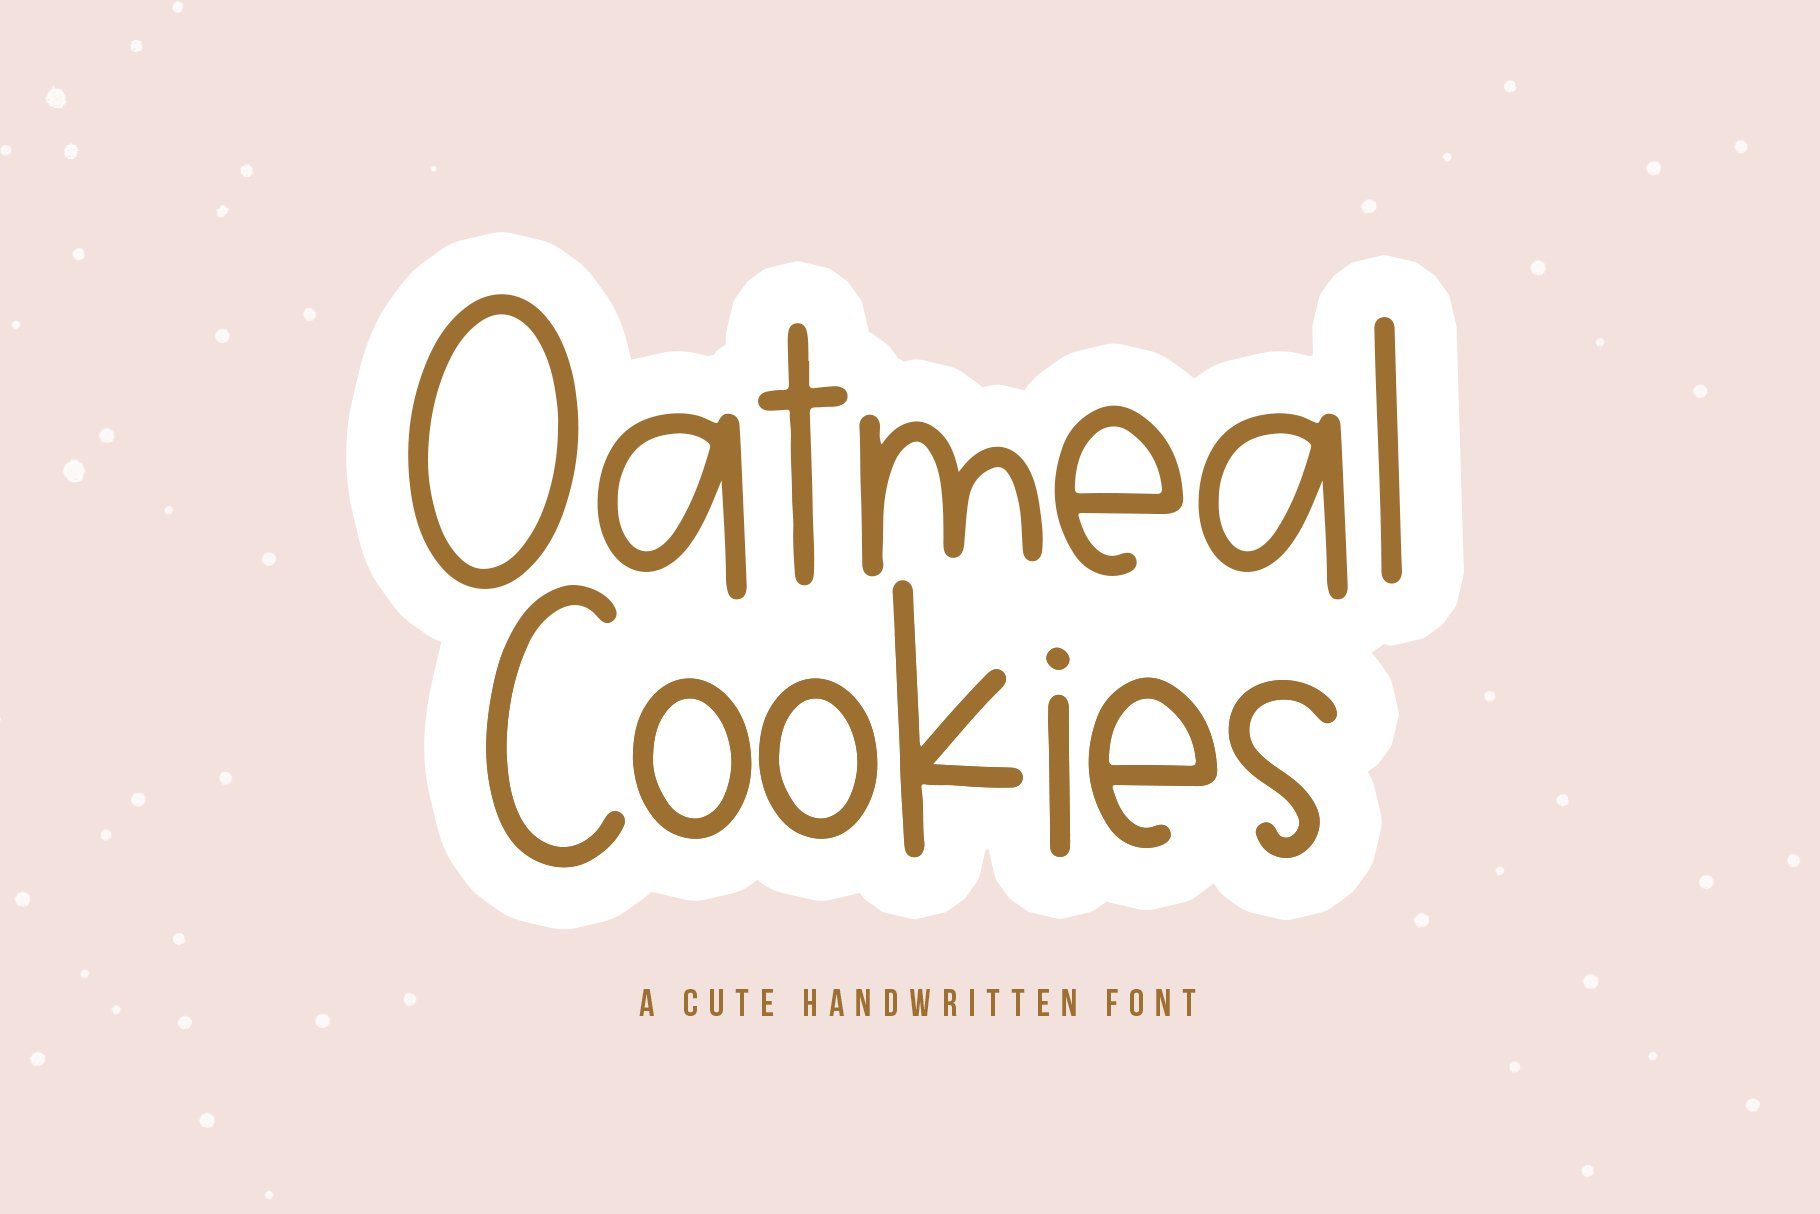 Oatmeal Cookies - A Cute Handwritten Font example image 1